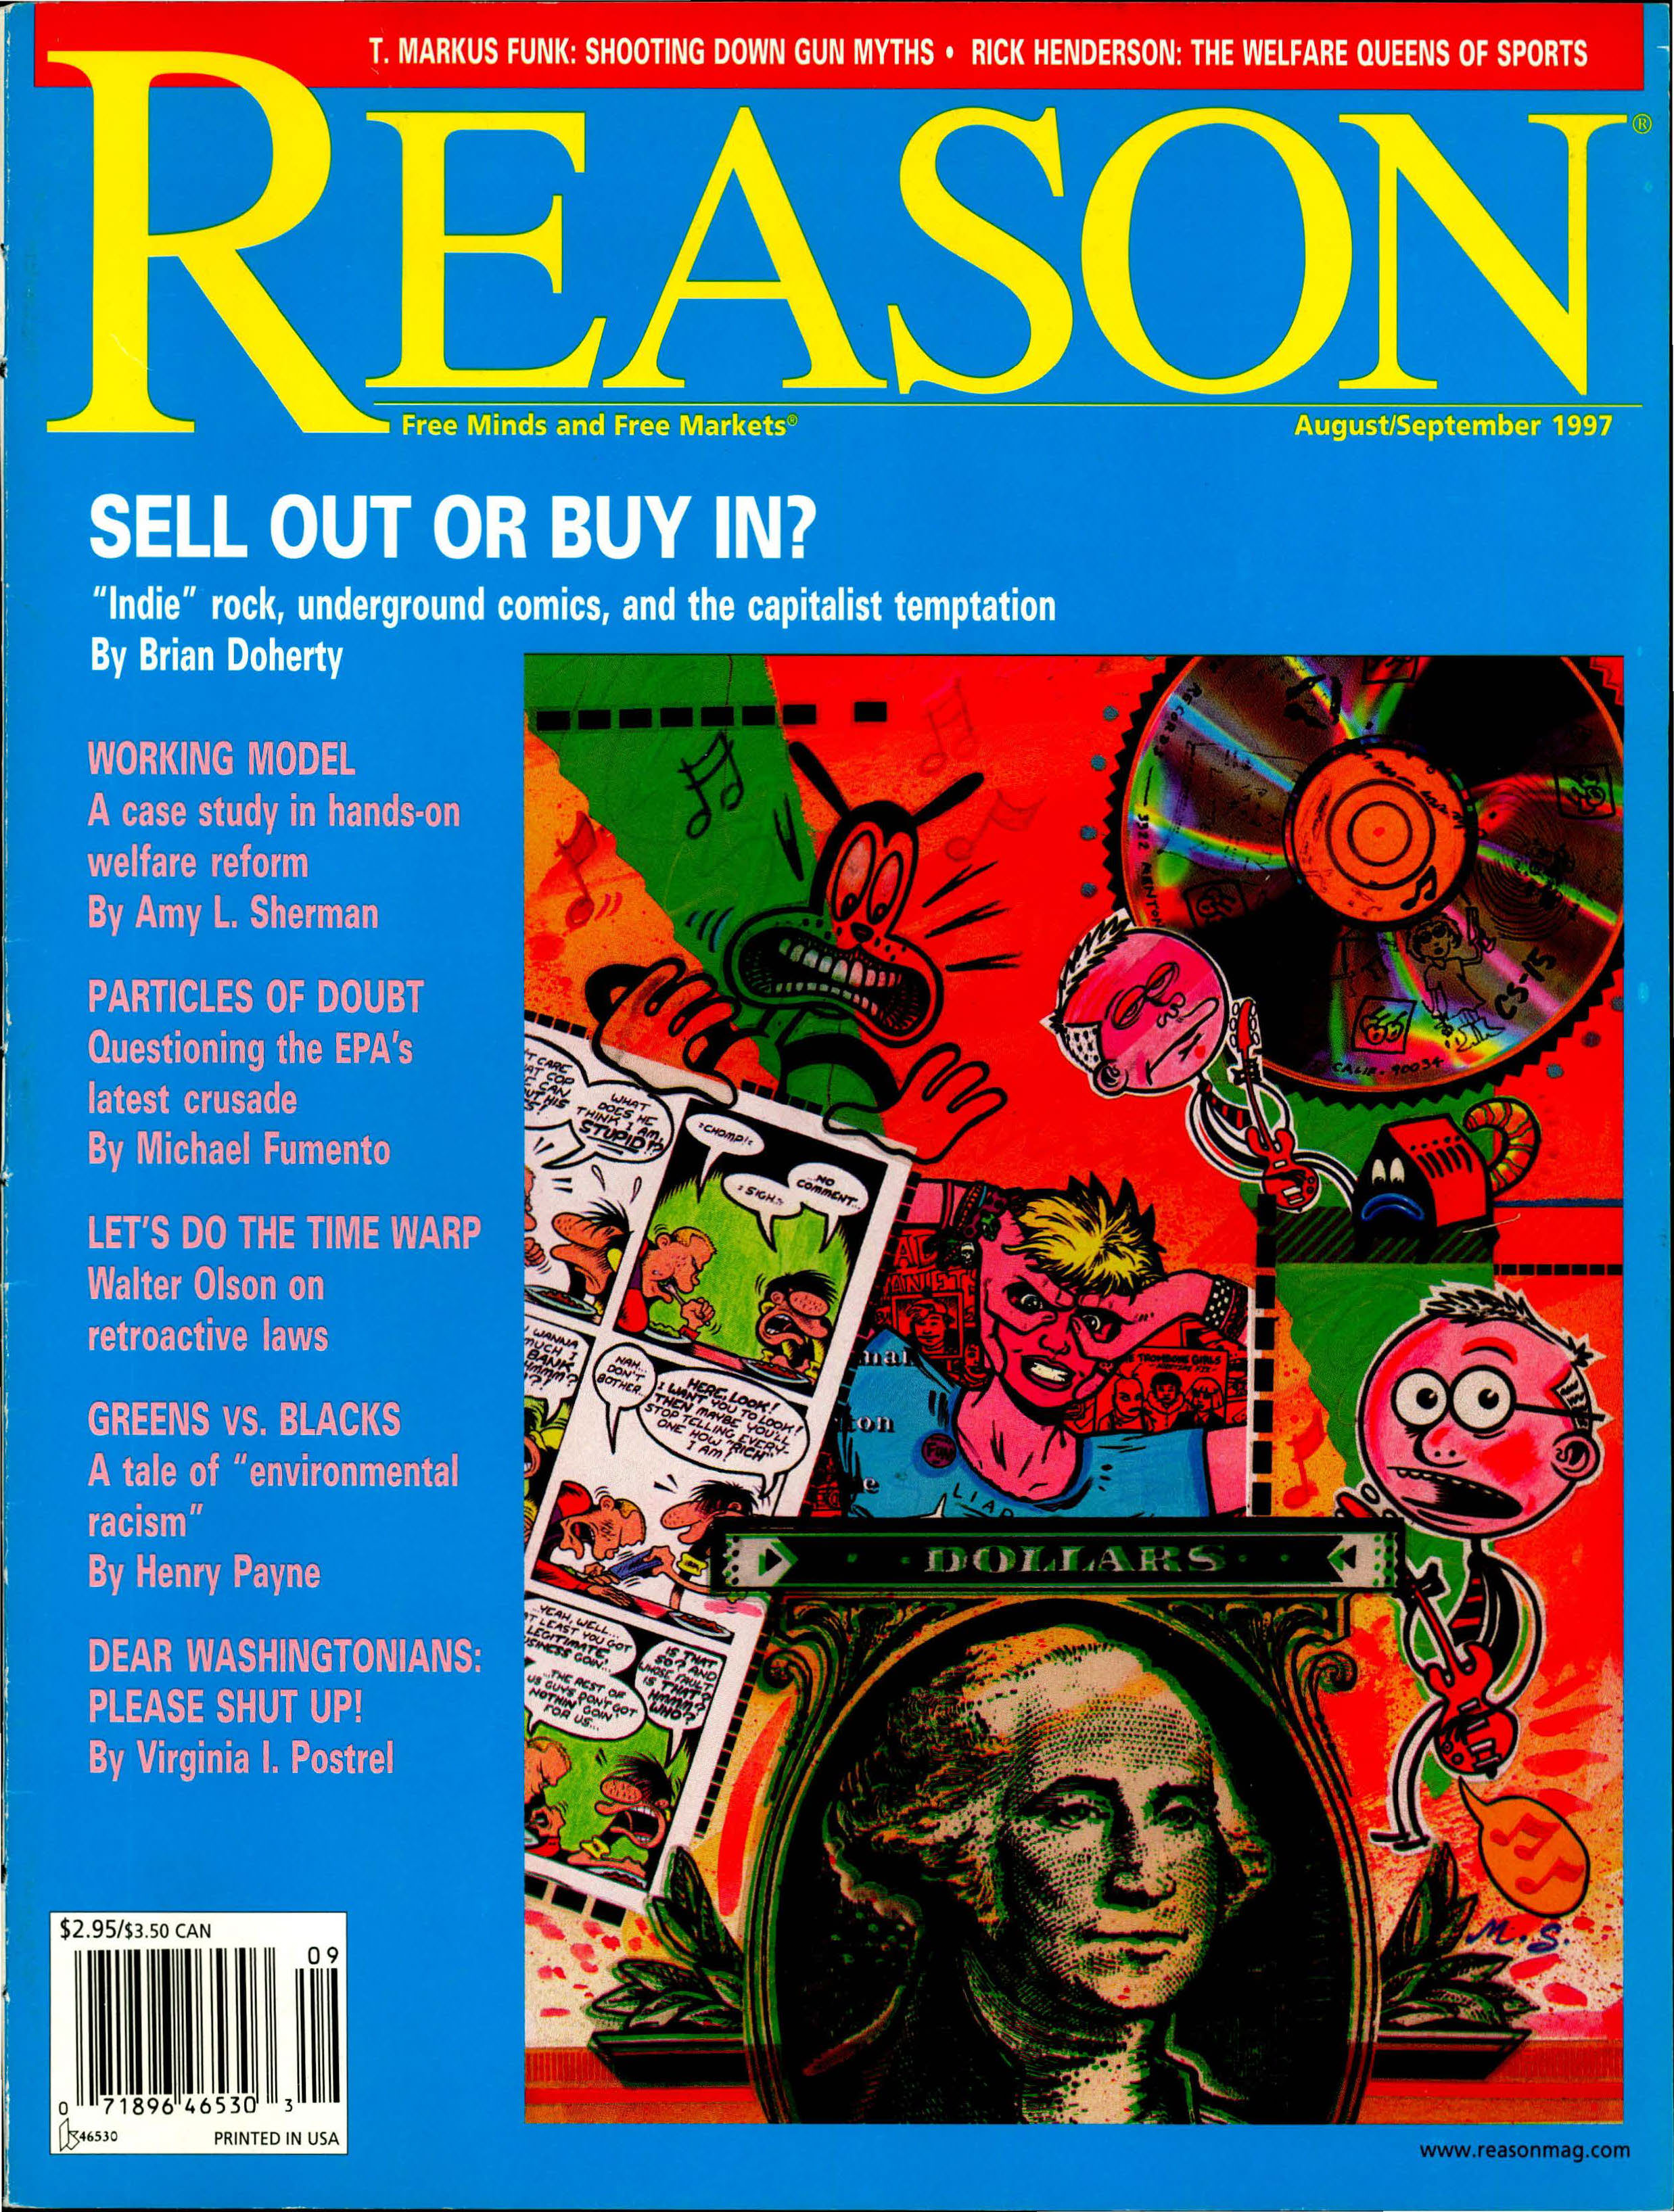 Reason Magazine, August/September 1997 cover image